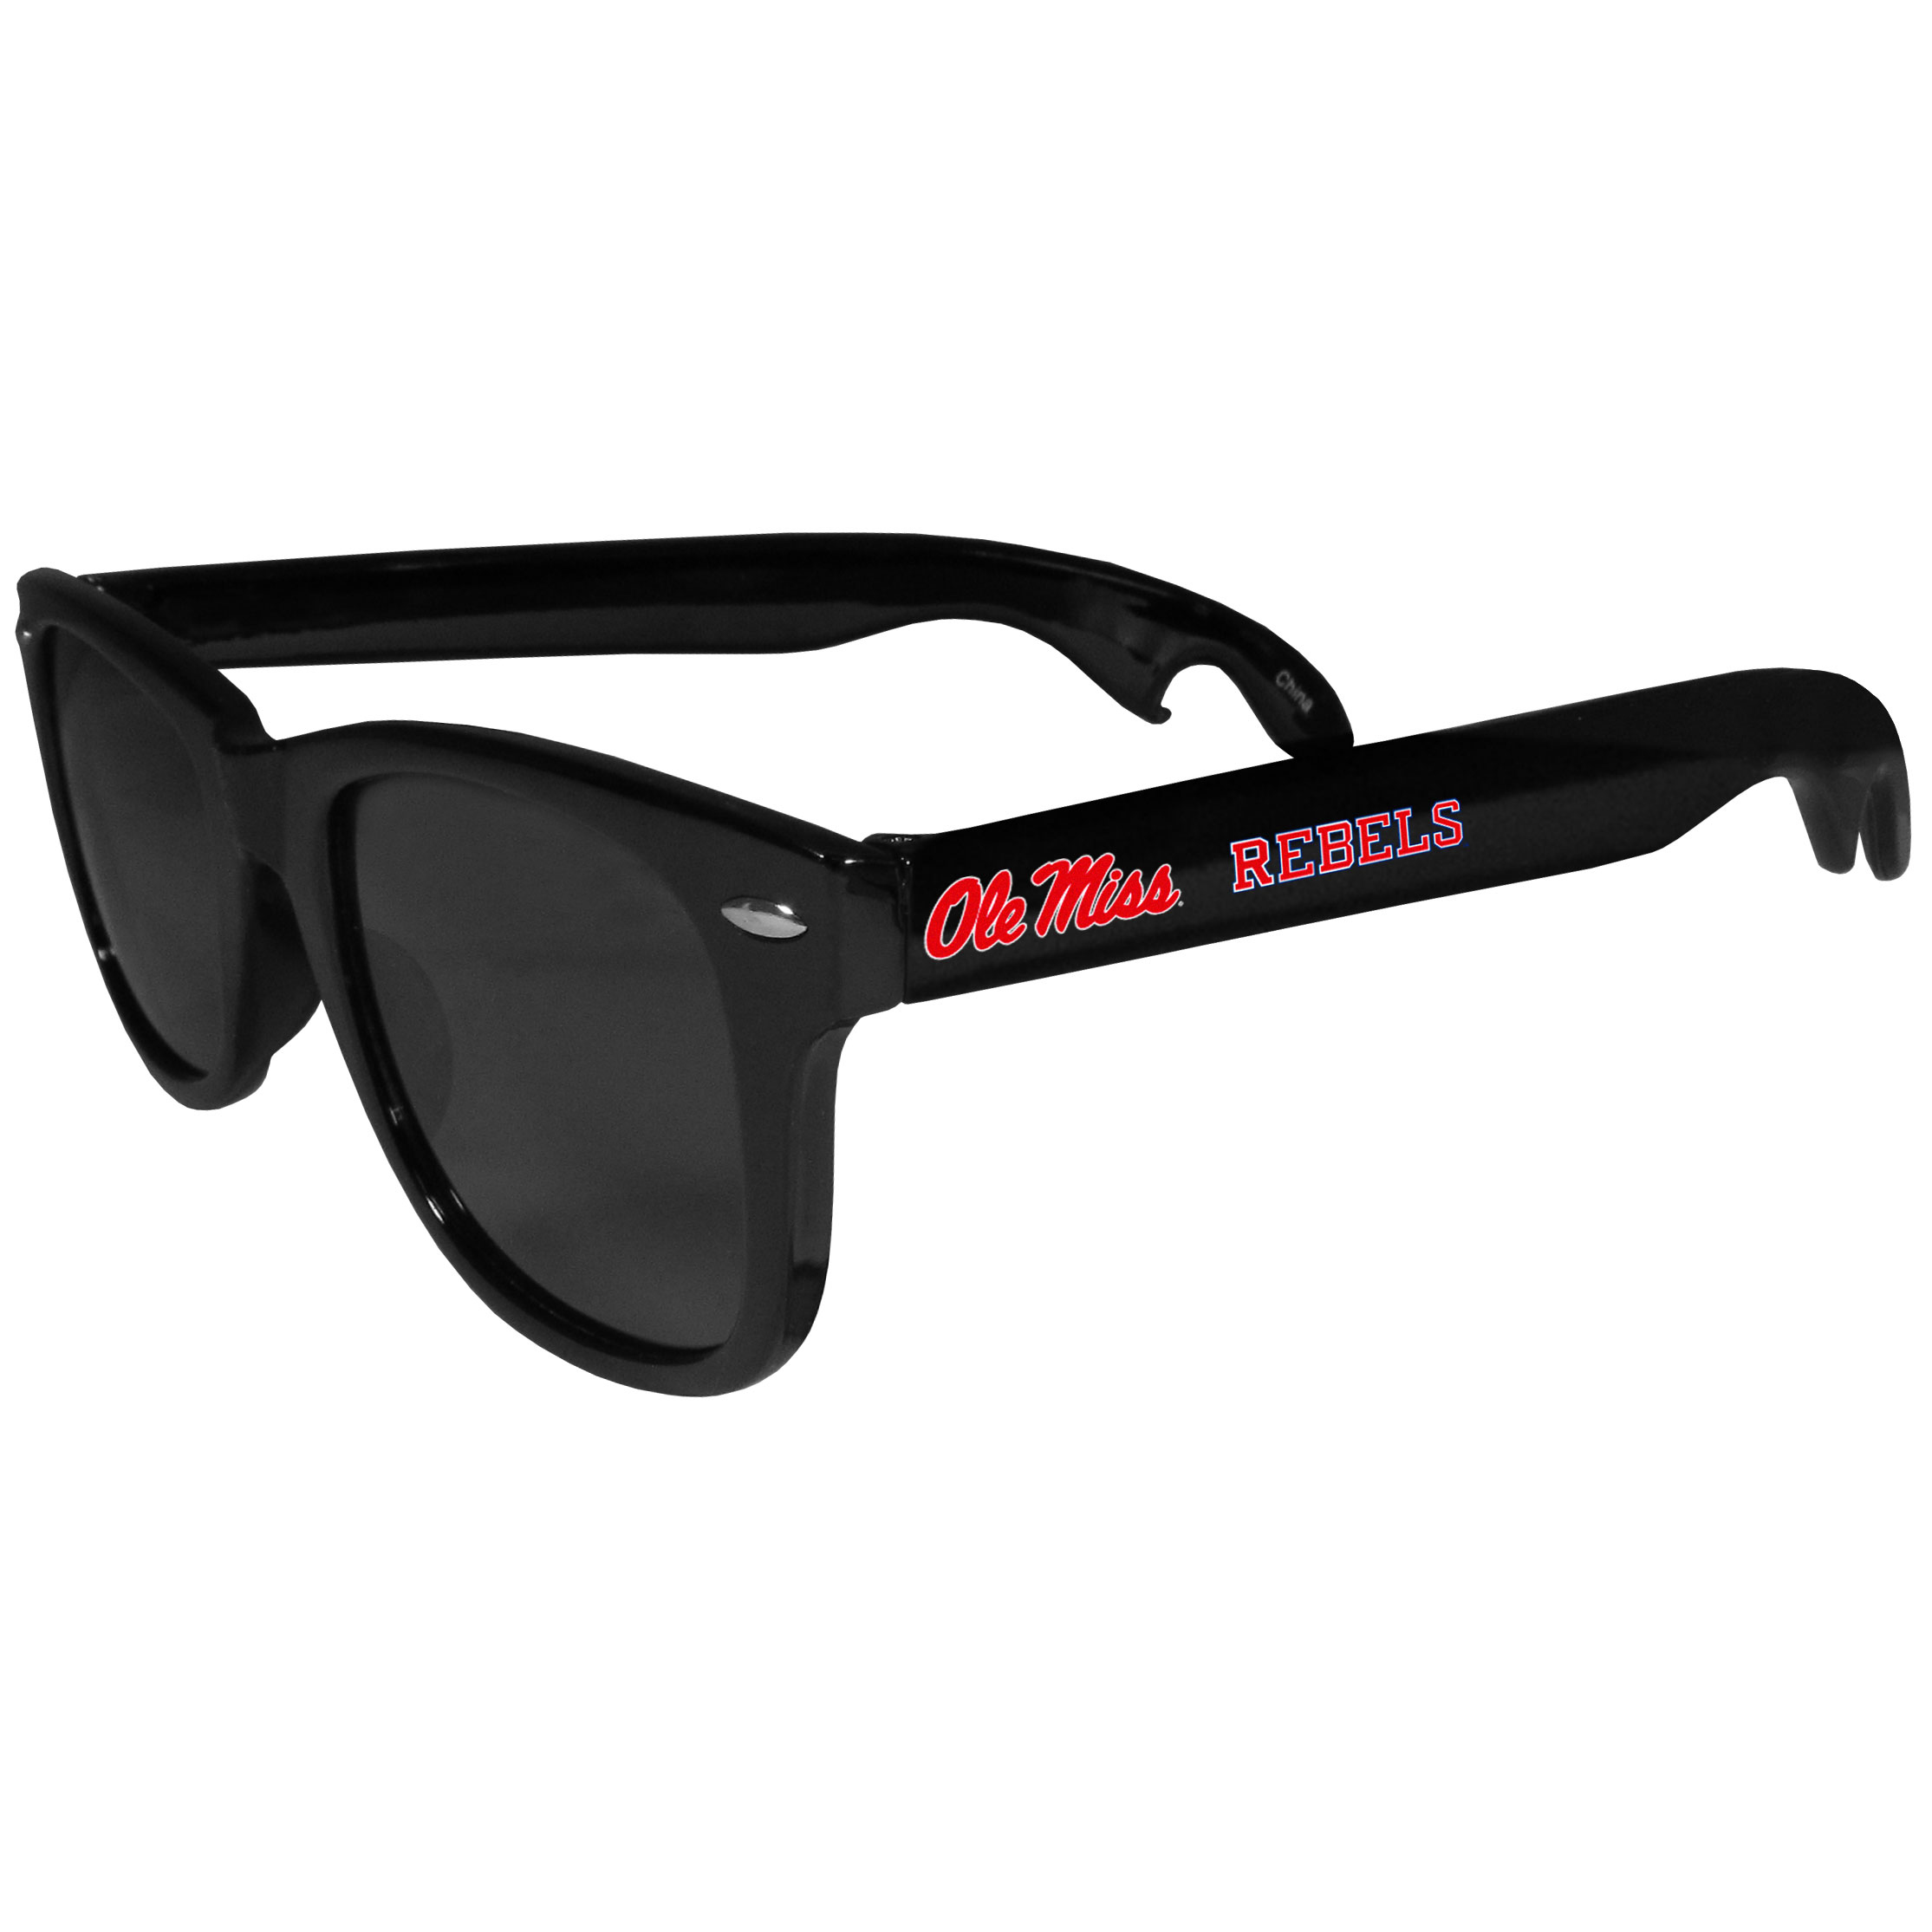 Mississippi Rebels Beachfarer Bottle Opener Sunglasses - Seriously, these sunglasses open bottles! Keep the party going with these amazing Mississippi Rebels bottle opener sunglasses. The stylish retro frames feature team designs on the arms and functional bottle openers on the end of the arms. Whether you are at the beach or having a backyard BBQ on game day, these shades will keep your eyes protected with 100% UVA/UVB protection and keep you hydrated with the handy bottle opener arms.